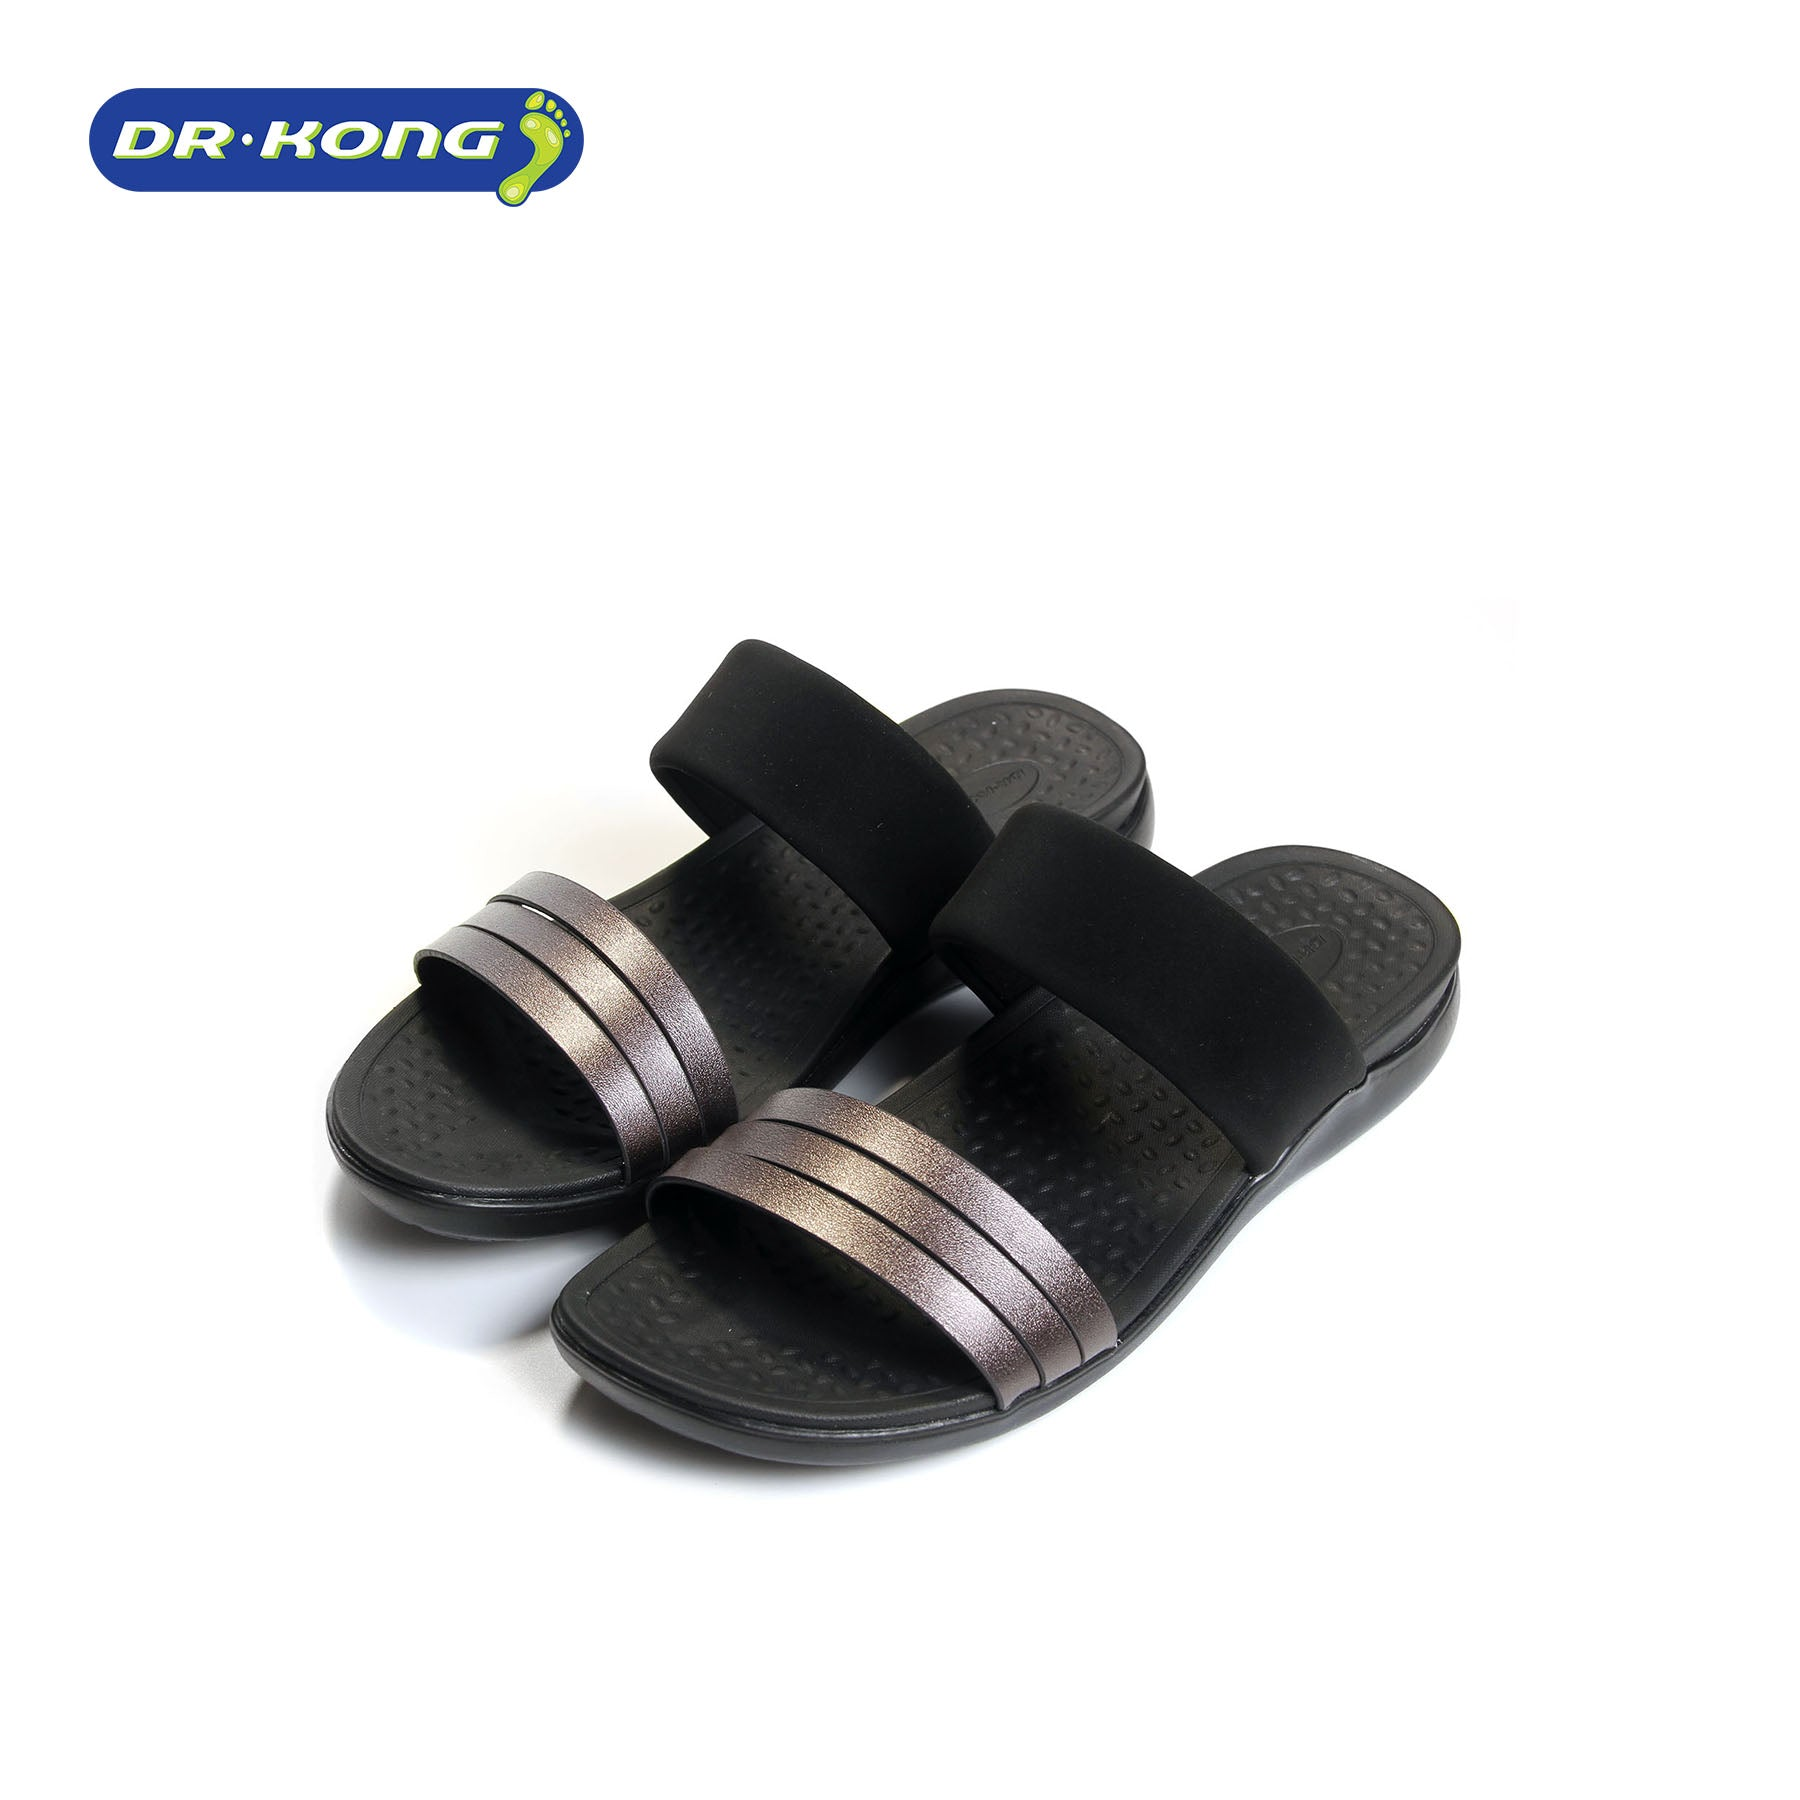 Dr. Kong Lightweight Sandals (Black) S3001101